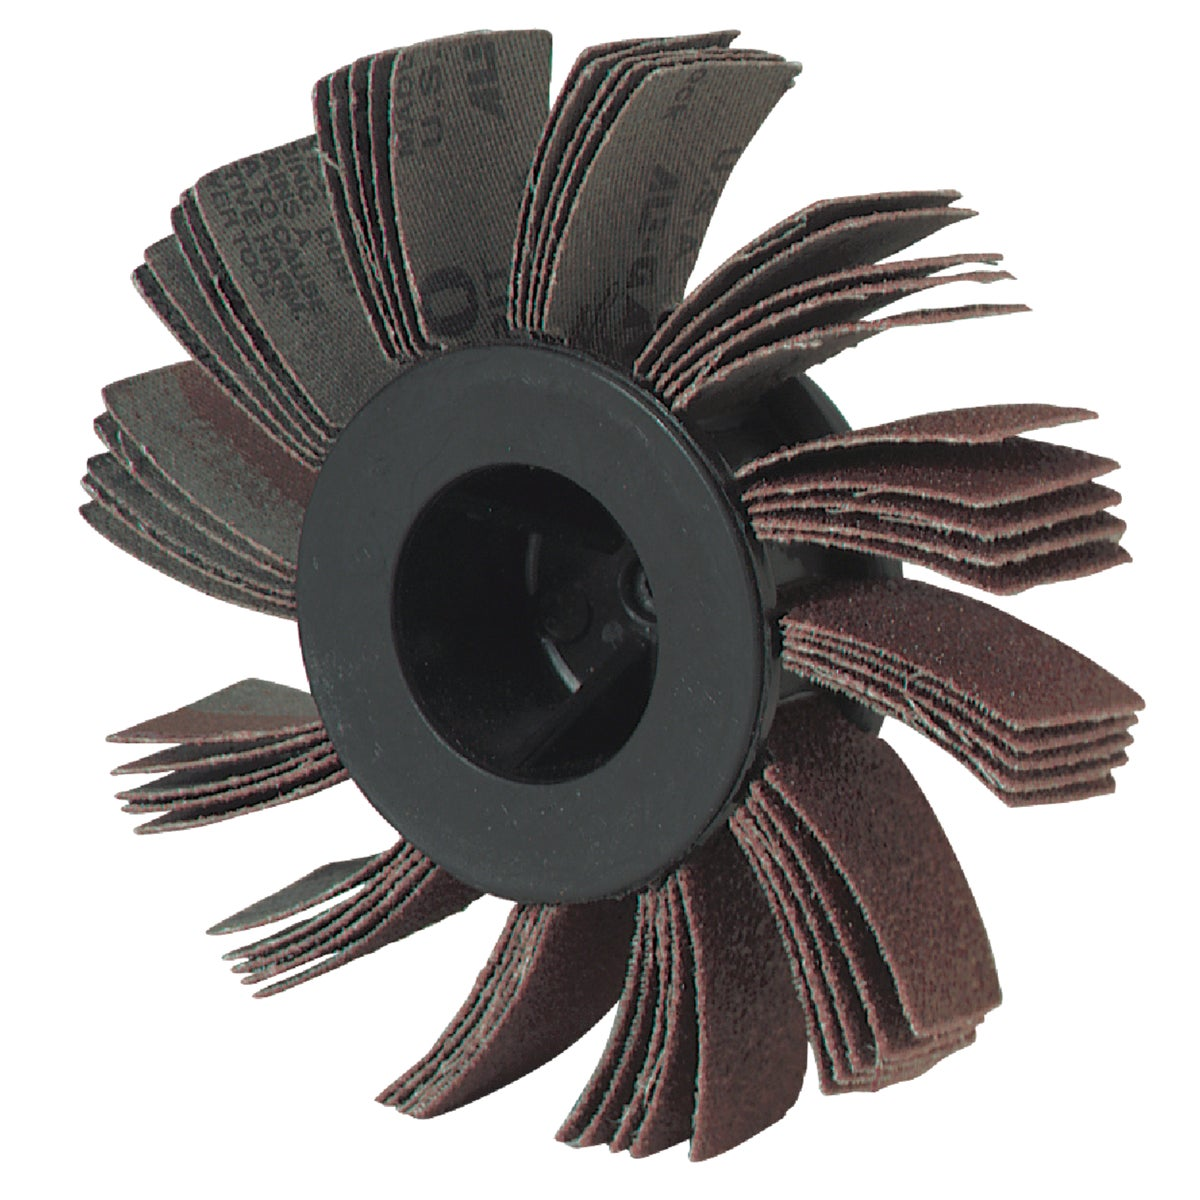 60G FLXBL SANDING WHEEL - 328942 by Ali Industries Inc